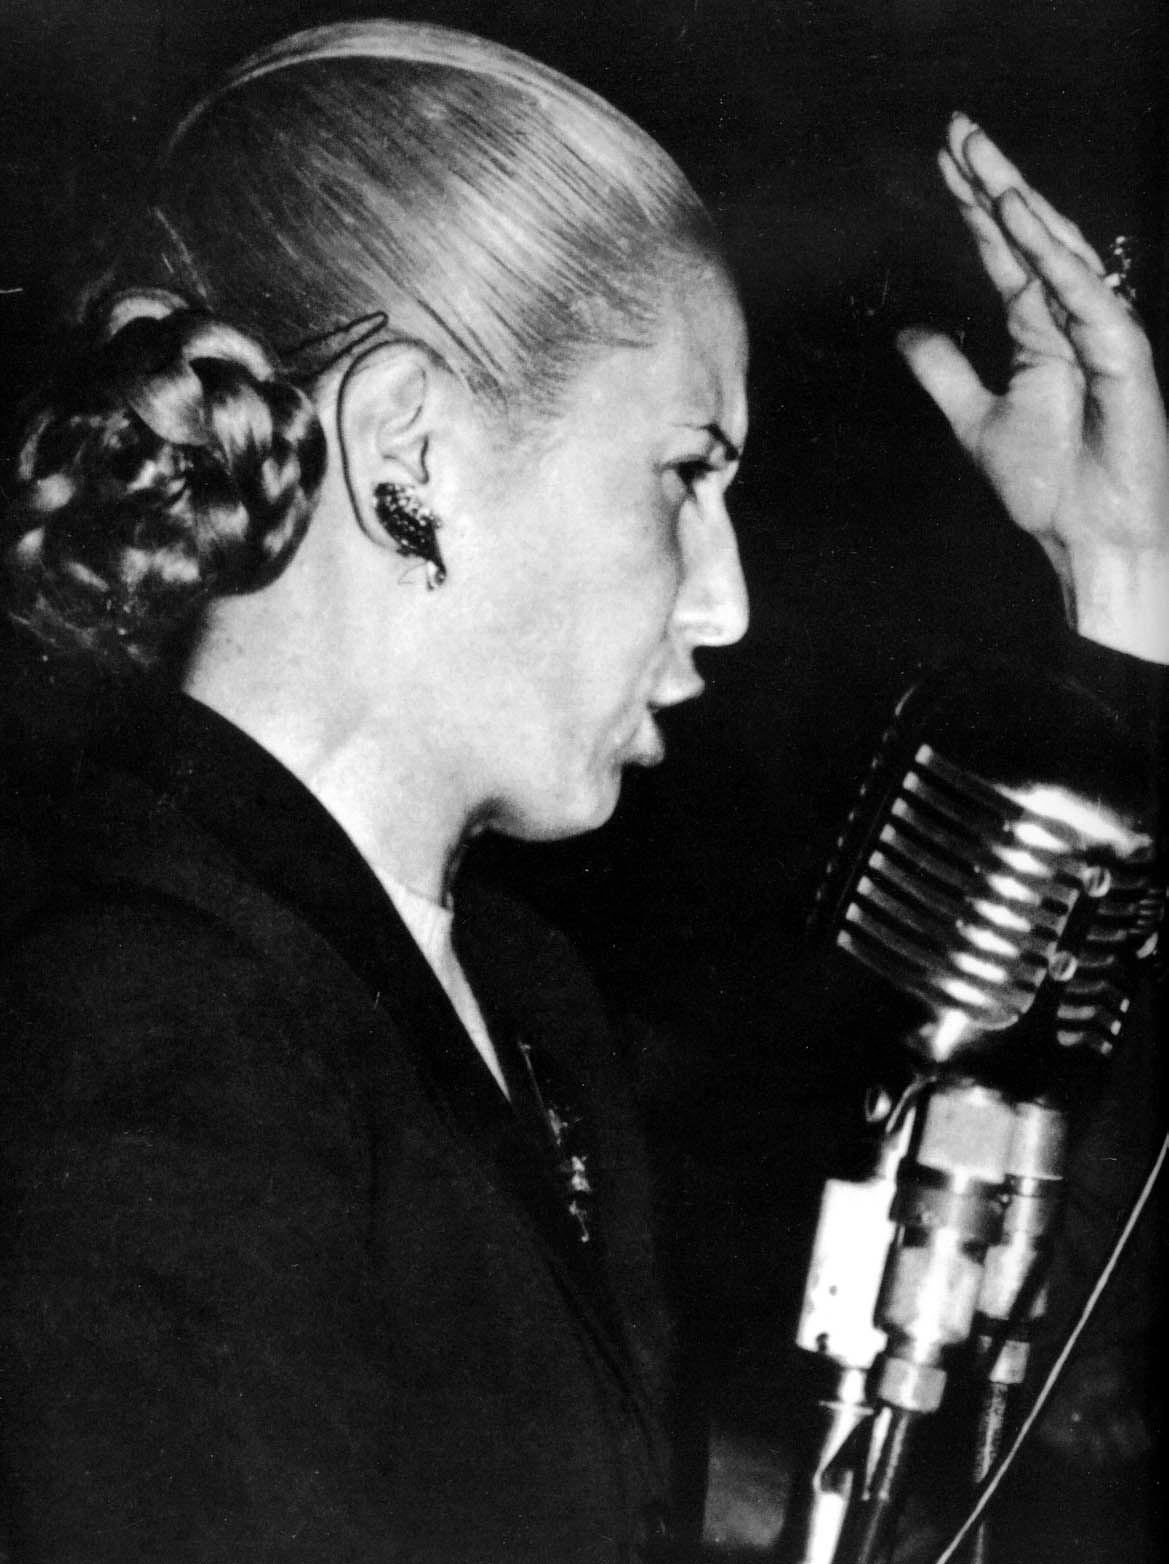 eva peron Free essay: eva duarte peron (evita) thesis: her experience as a member of the lower class who overcame poverty and her belief in bringing justice to the.